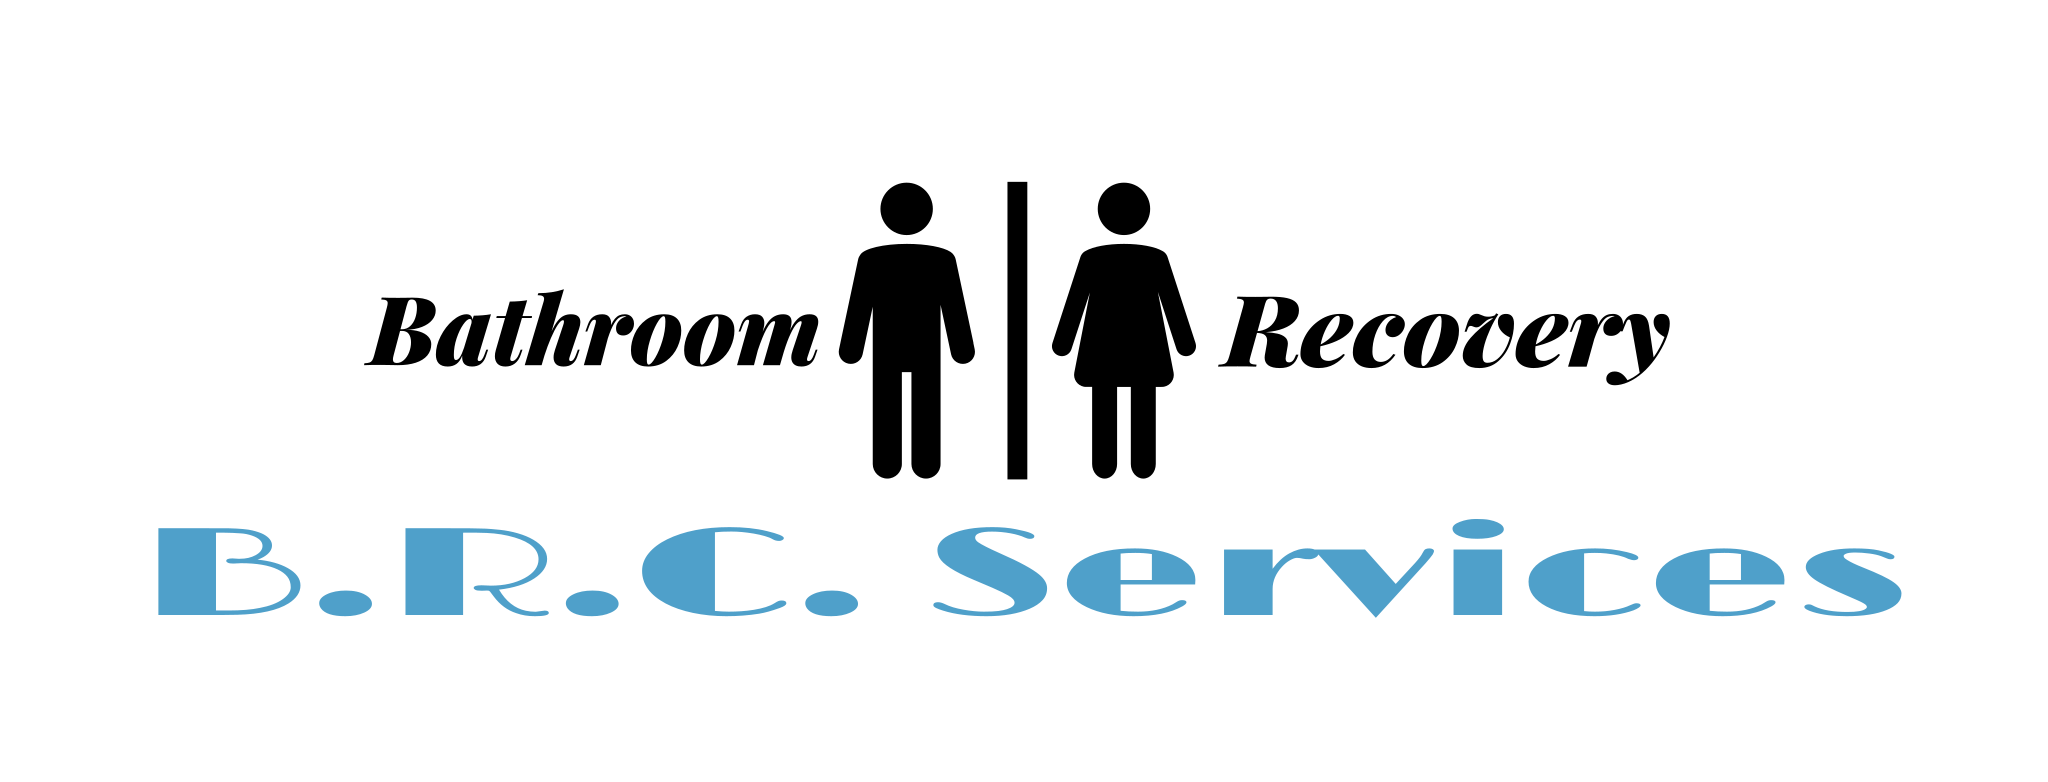 Bathroom Recovery Services LLC. Logo